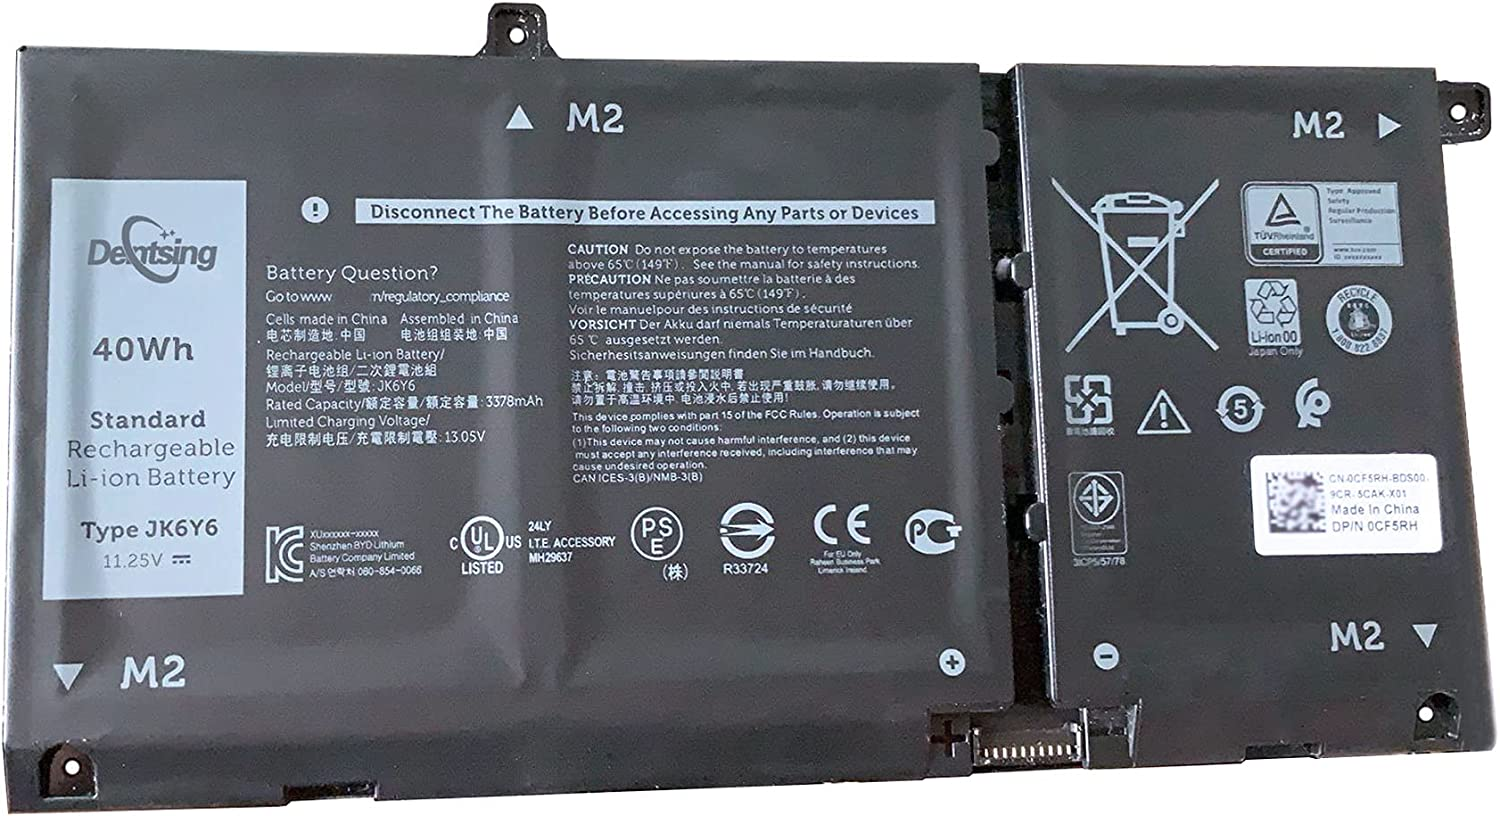 Dentsing JK6Y6 11.25V 40W/3550mAh 3Cells Laptop Battery Compatible with Dell Latitude 15 3510 Inspiron 5301 5401 5402 5405 5409 15 5502 5508 5509 Vostro 5300 5401 5501 Series Notebook CF5RH H5CKD